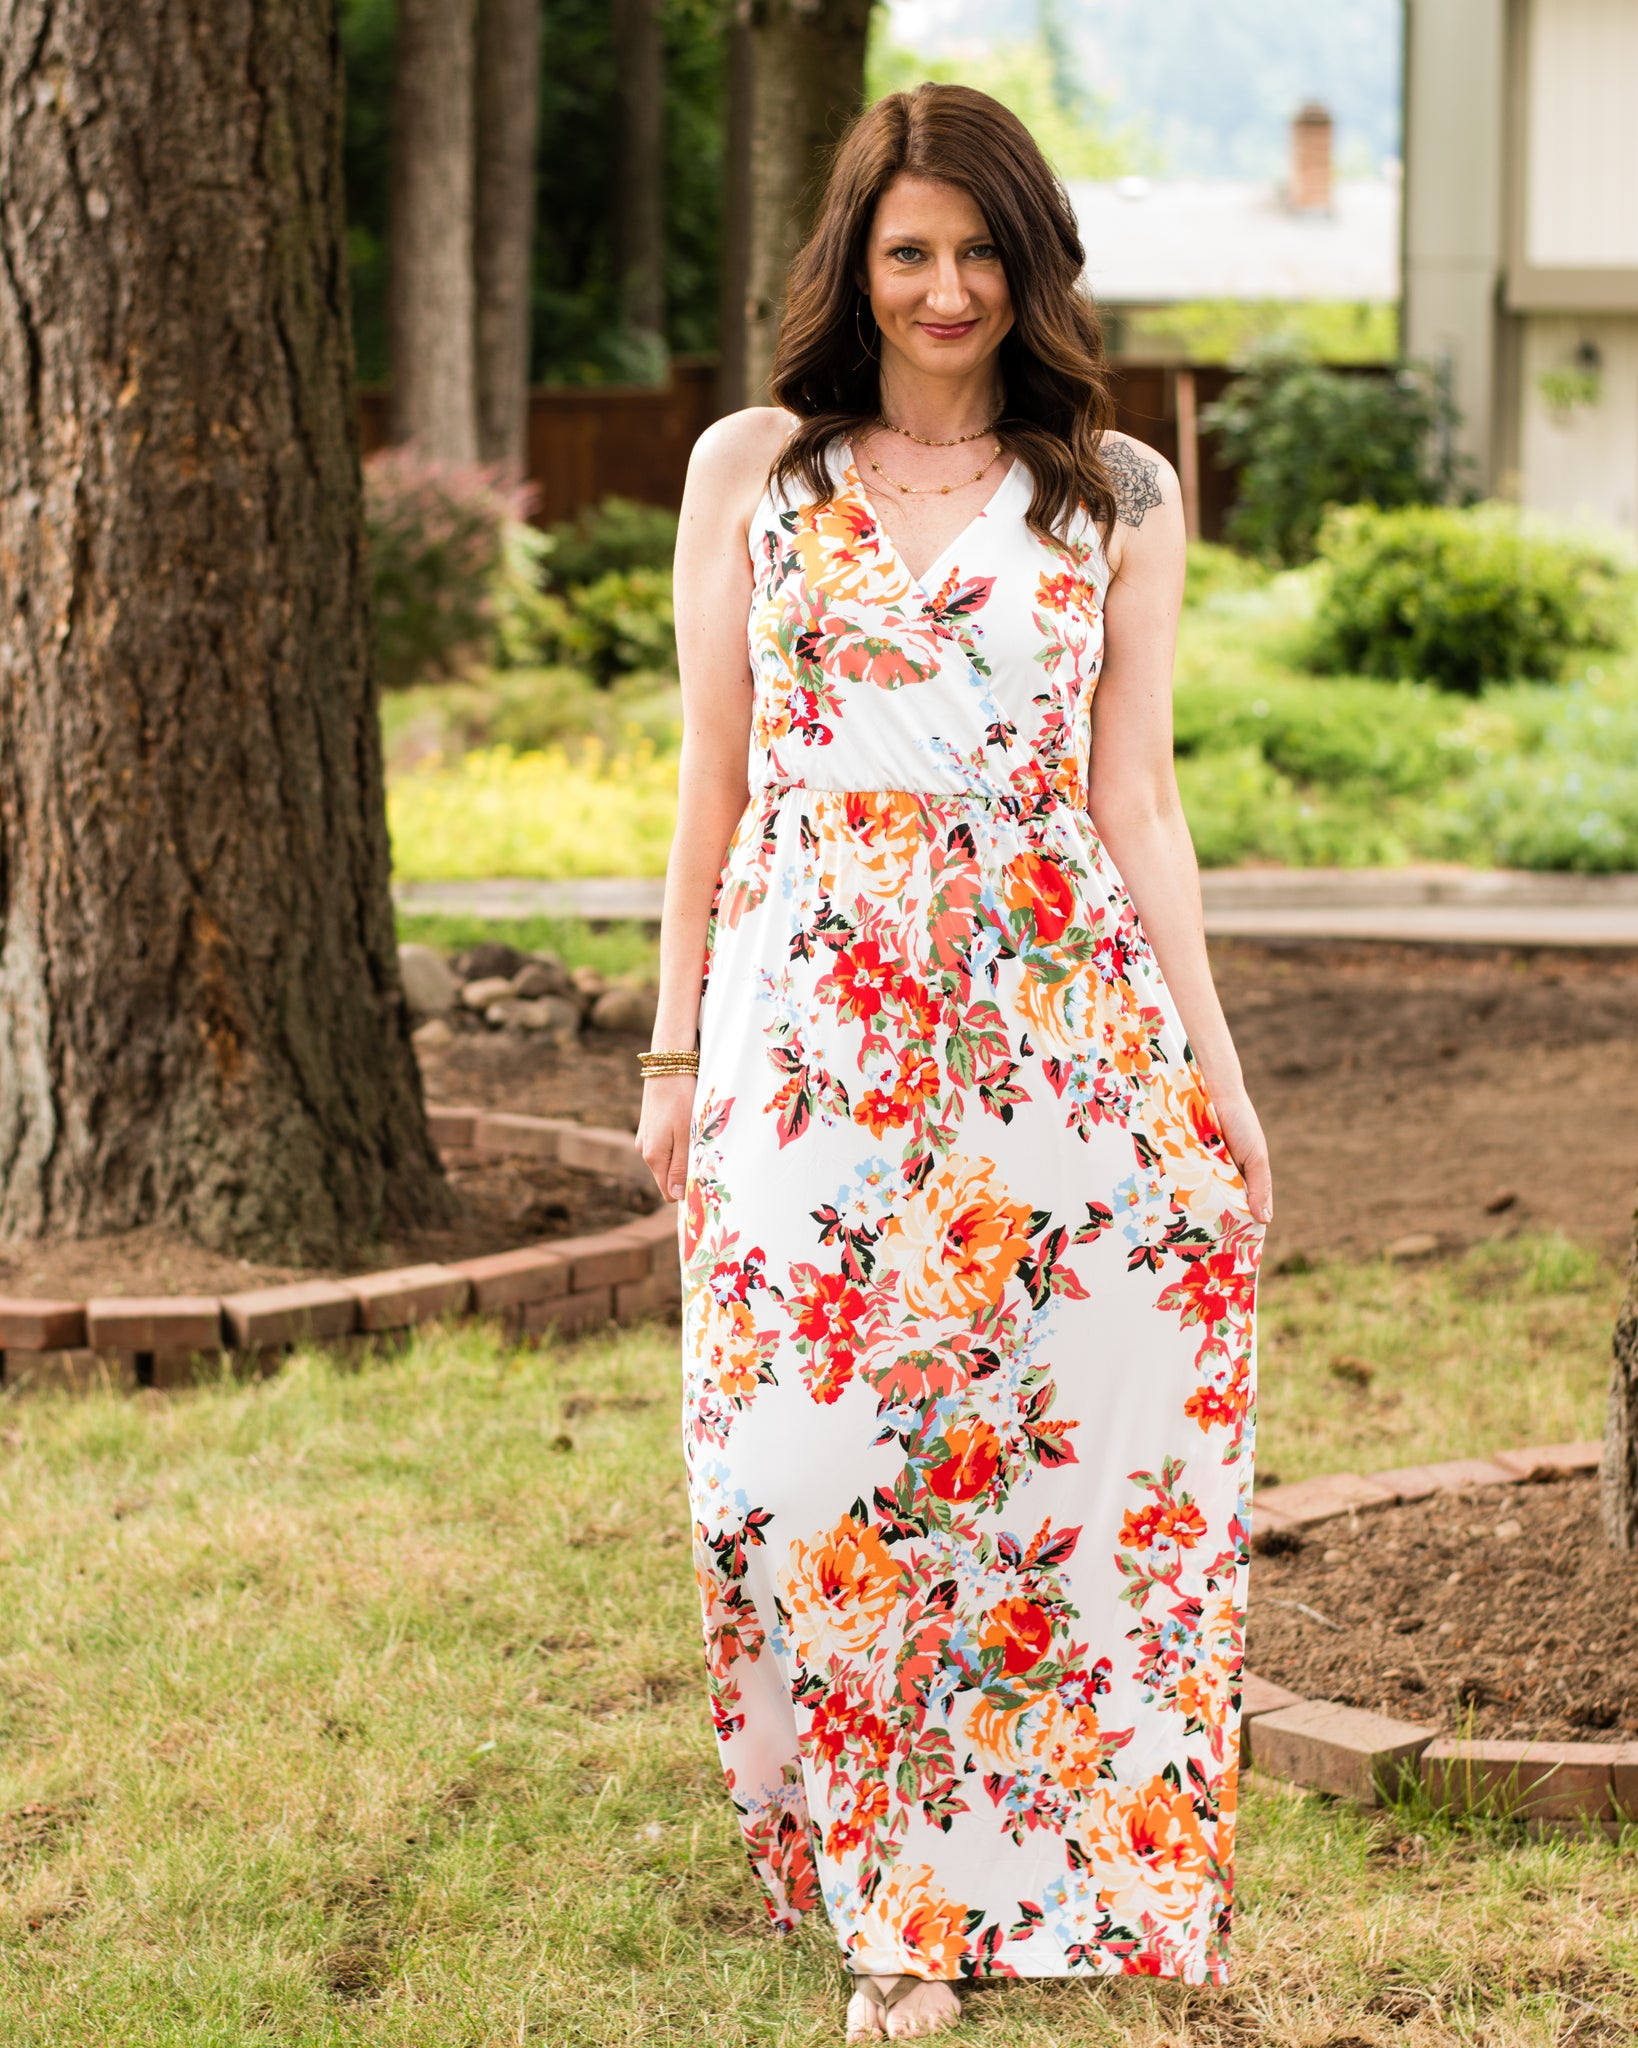 Summer Days Floral Maxi Dress - Enclothe Boutique